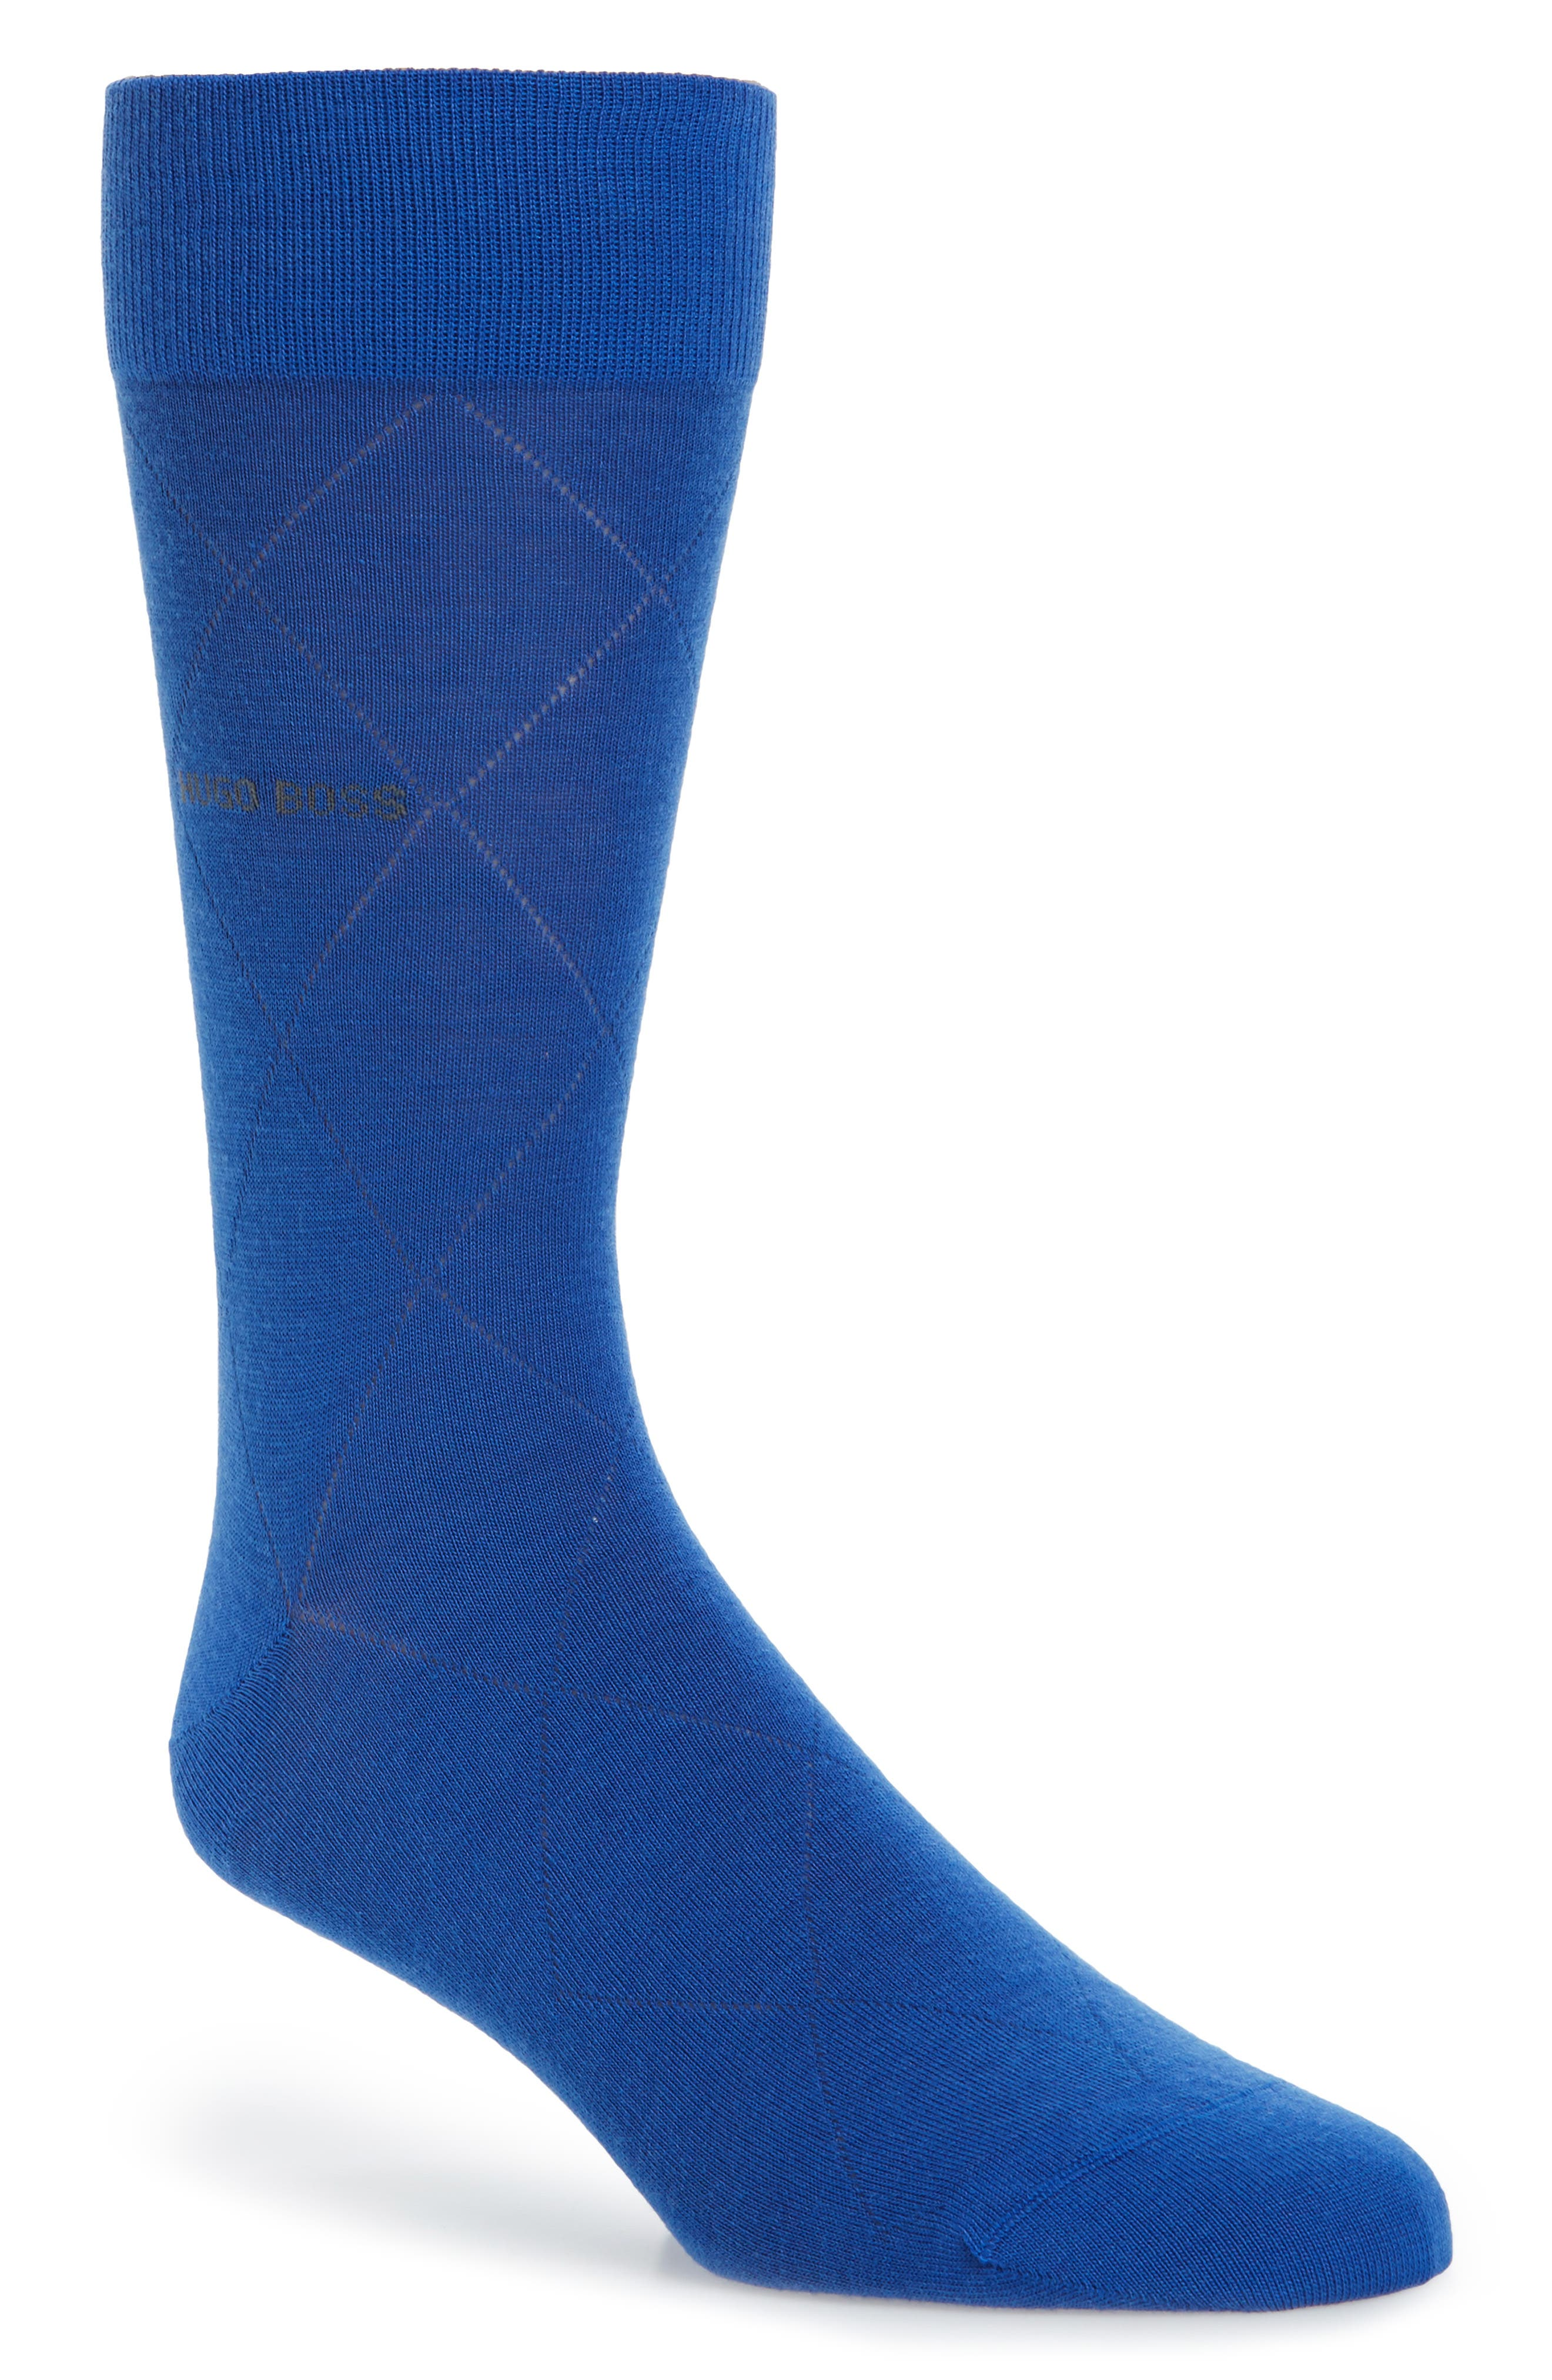 Argyle Crew Socks,                         Main,                         color, 428